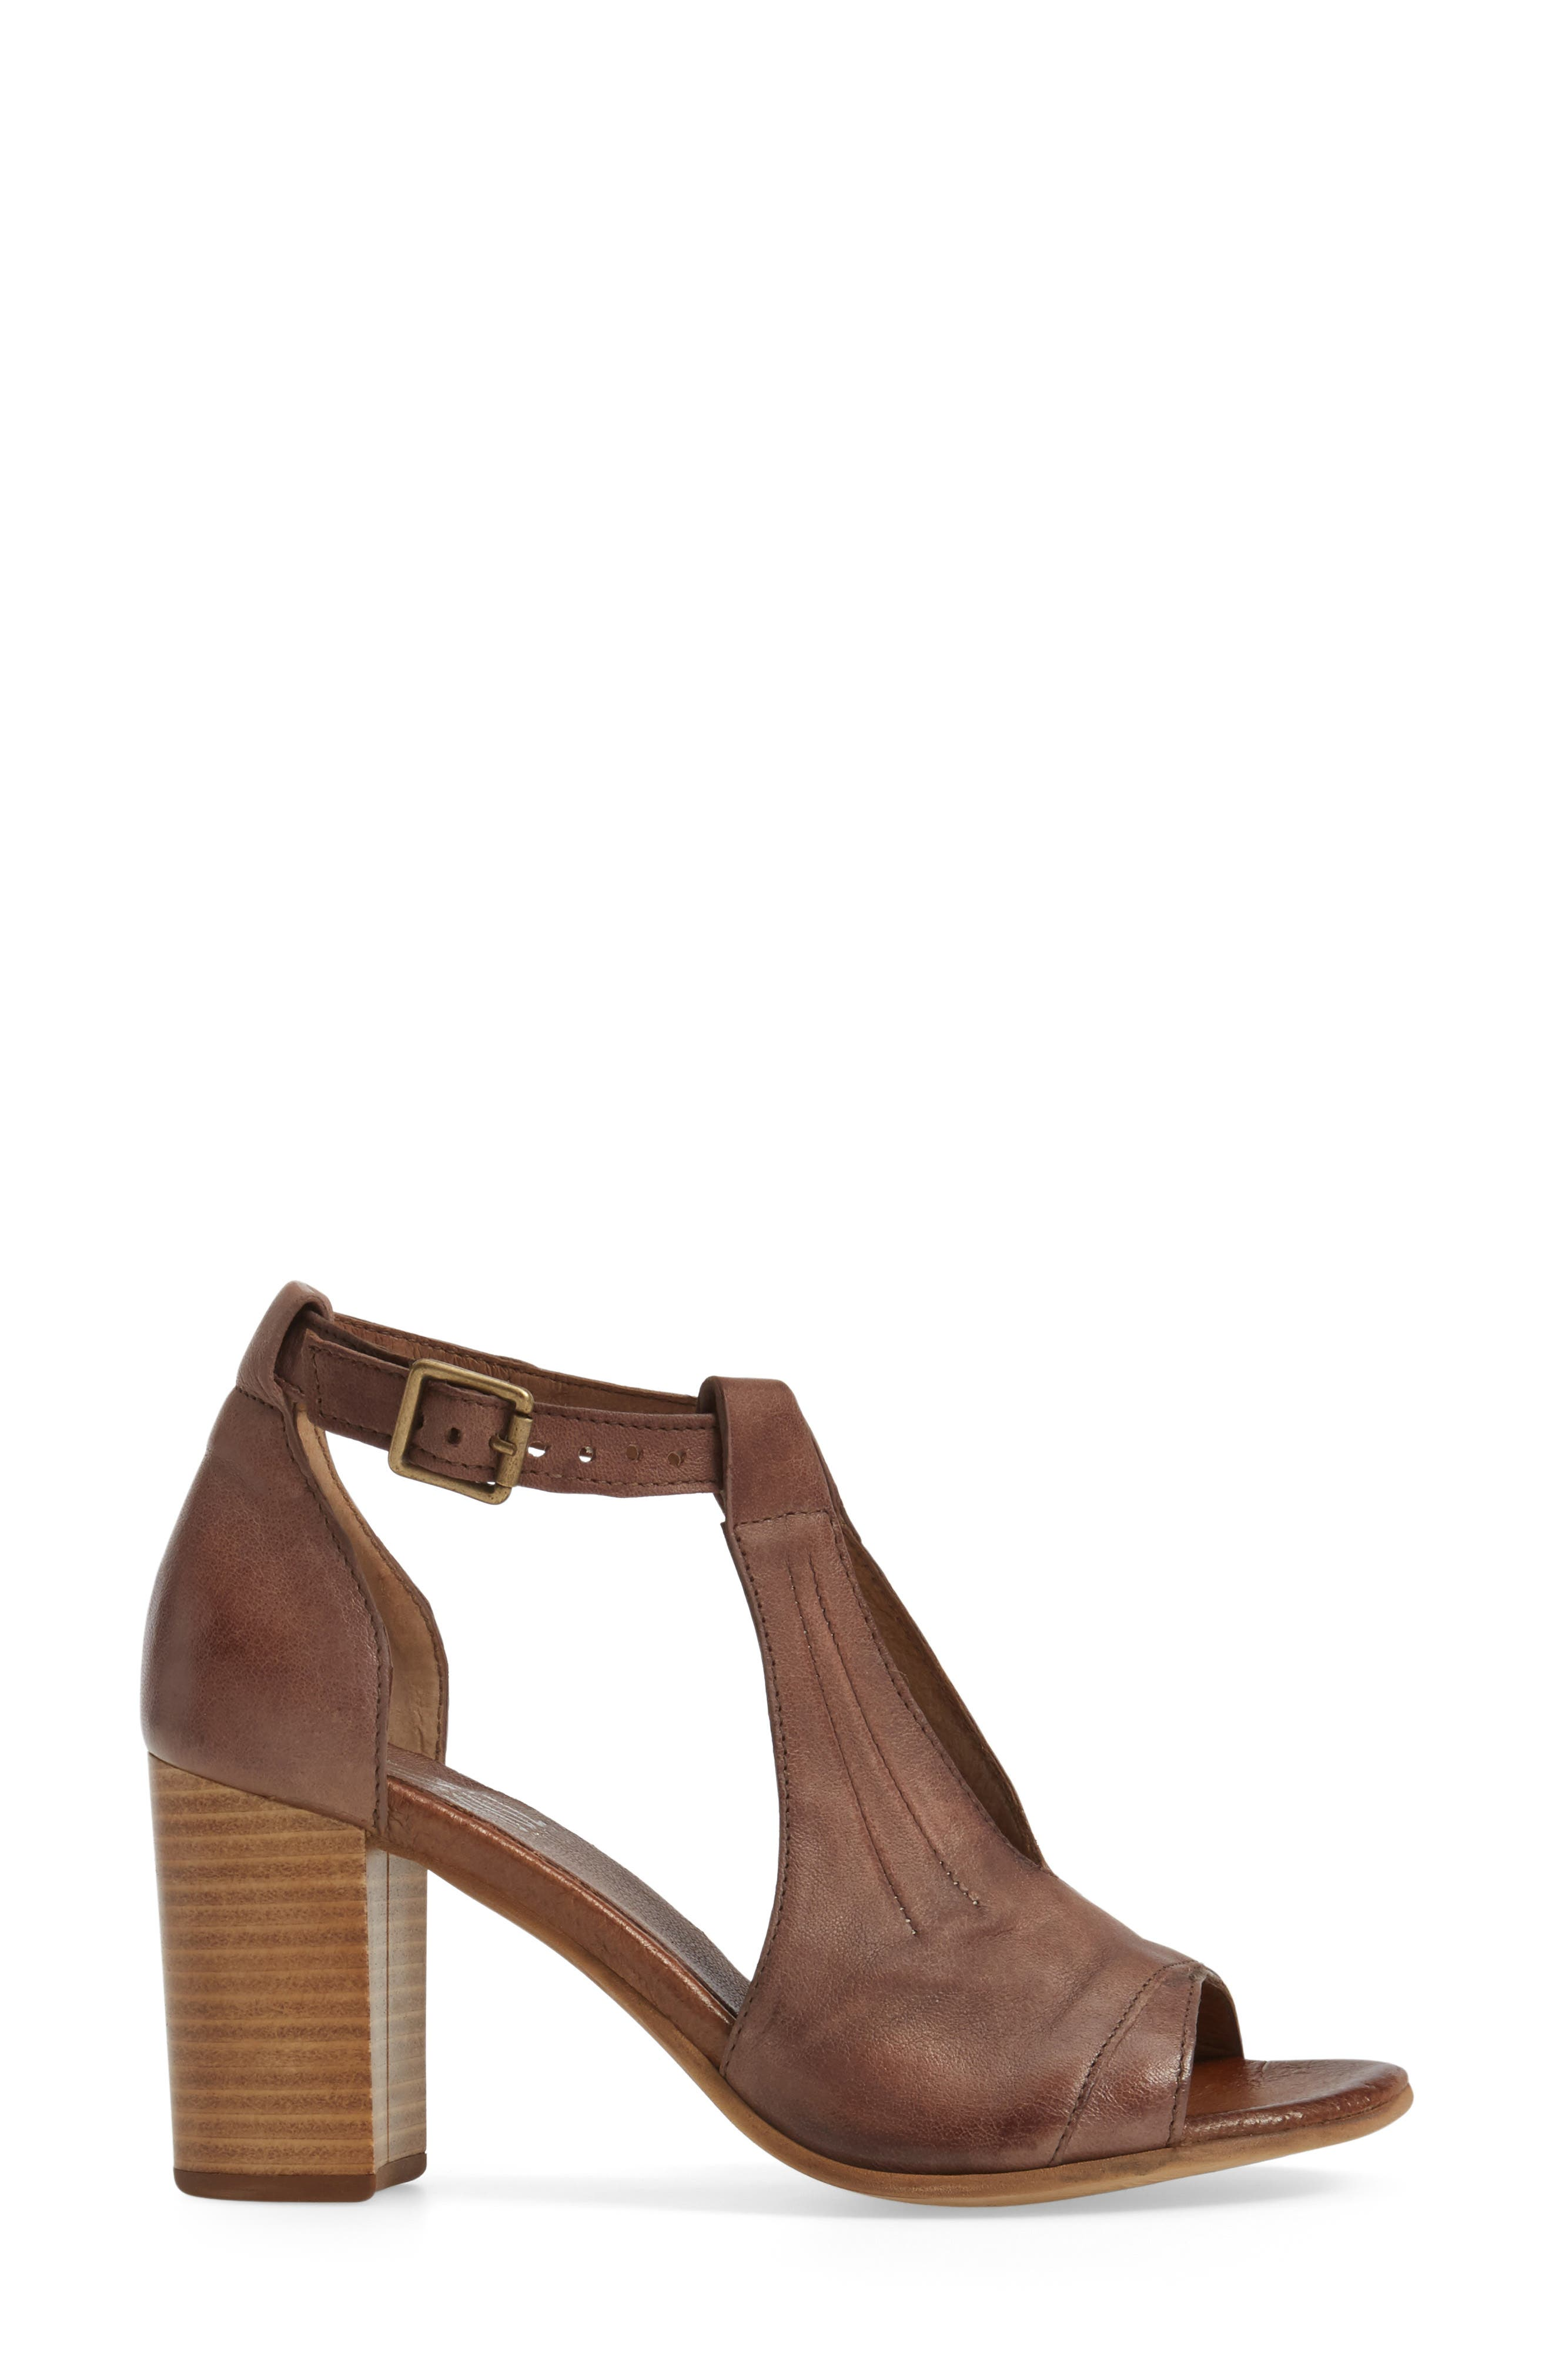 Alternate Image 3  - Miz Mooz Savannah T-Strap Strap Sandal (Women)